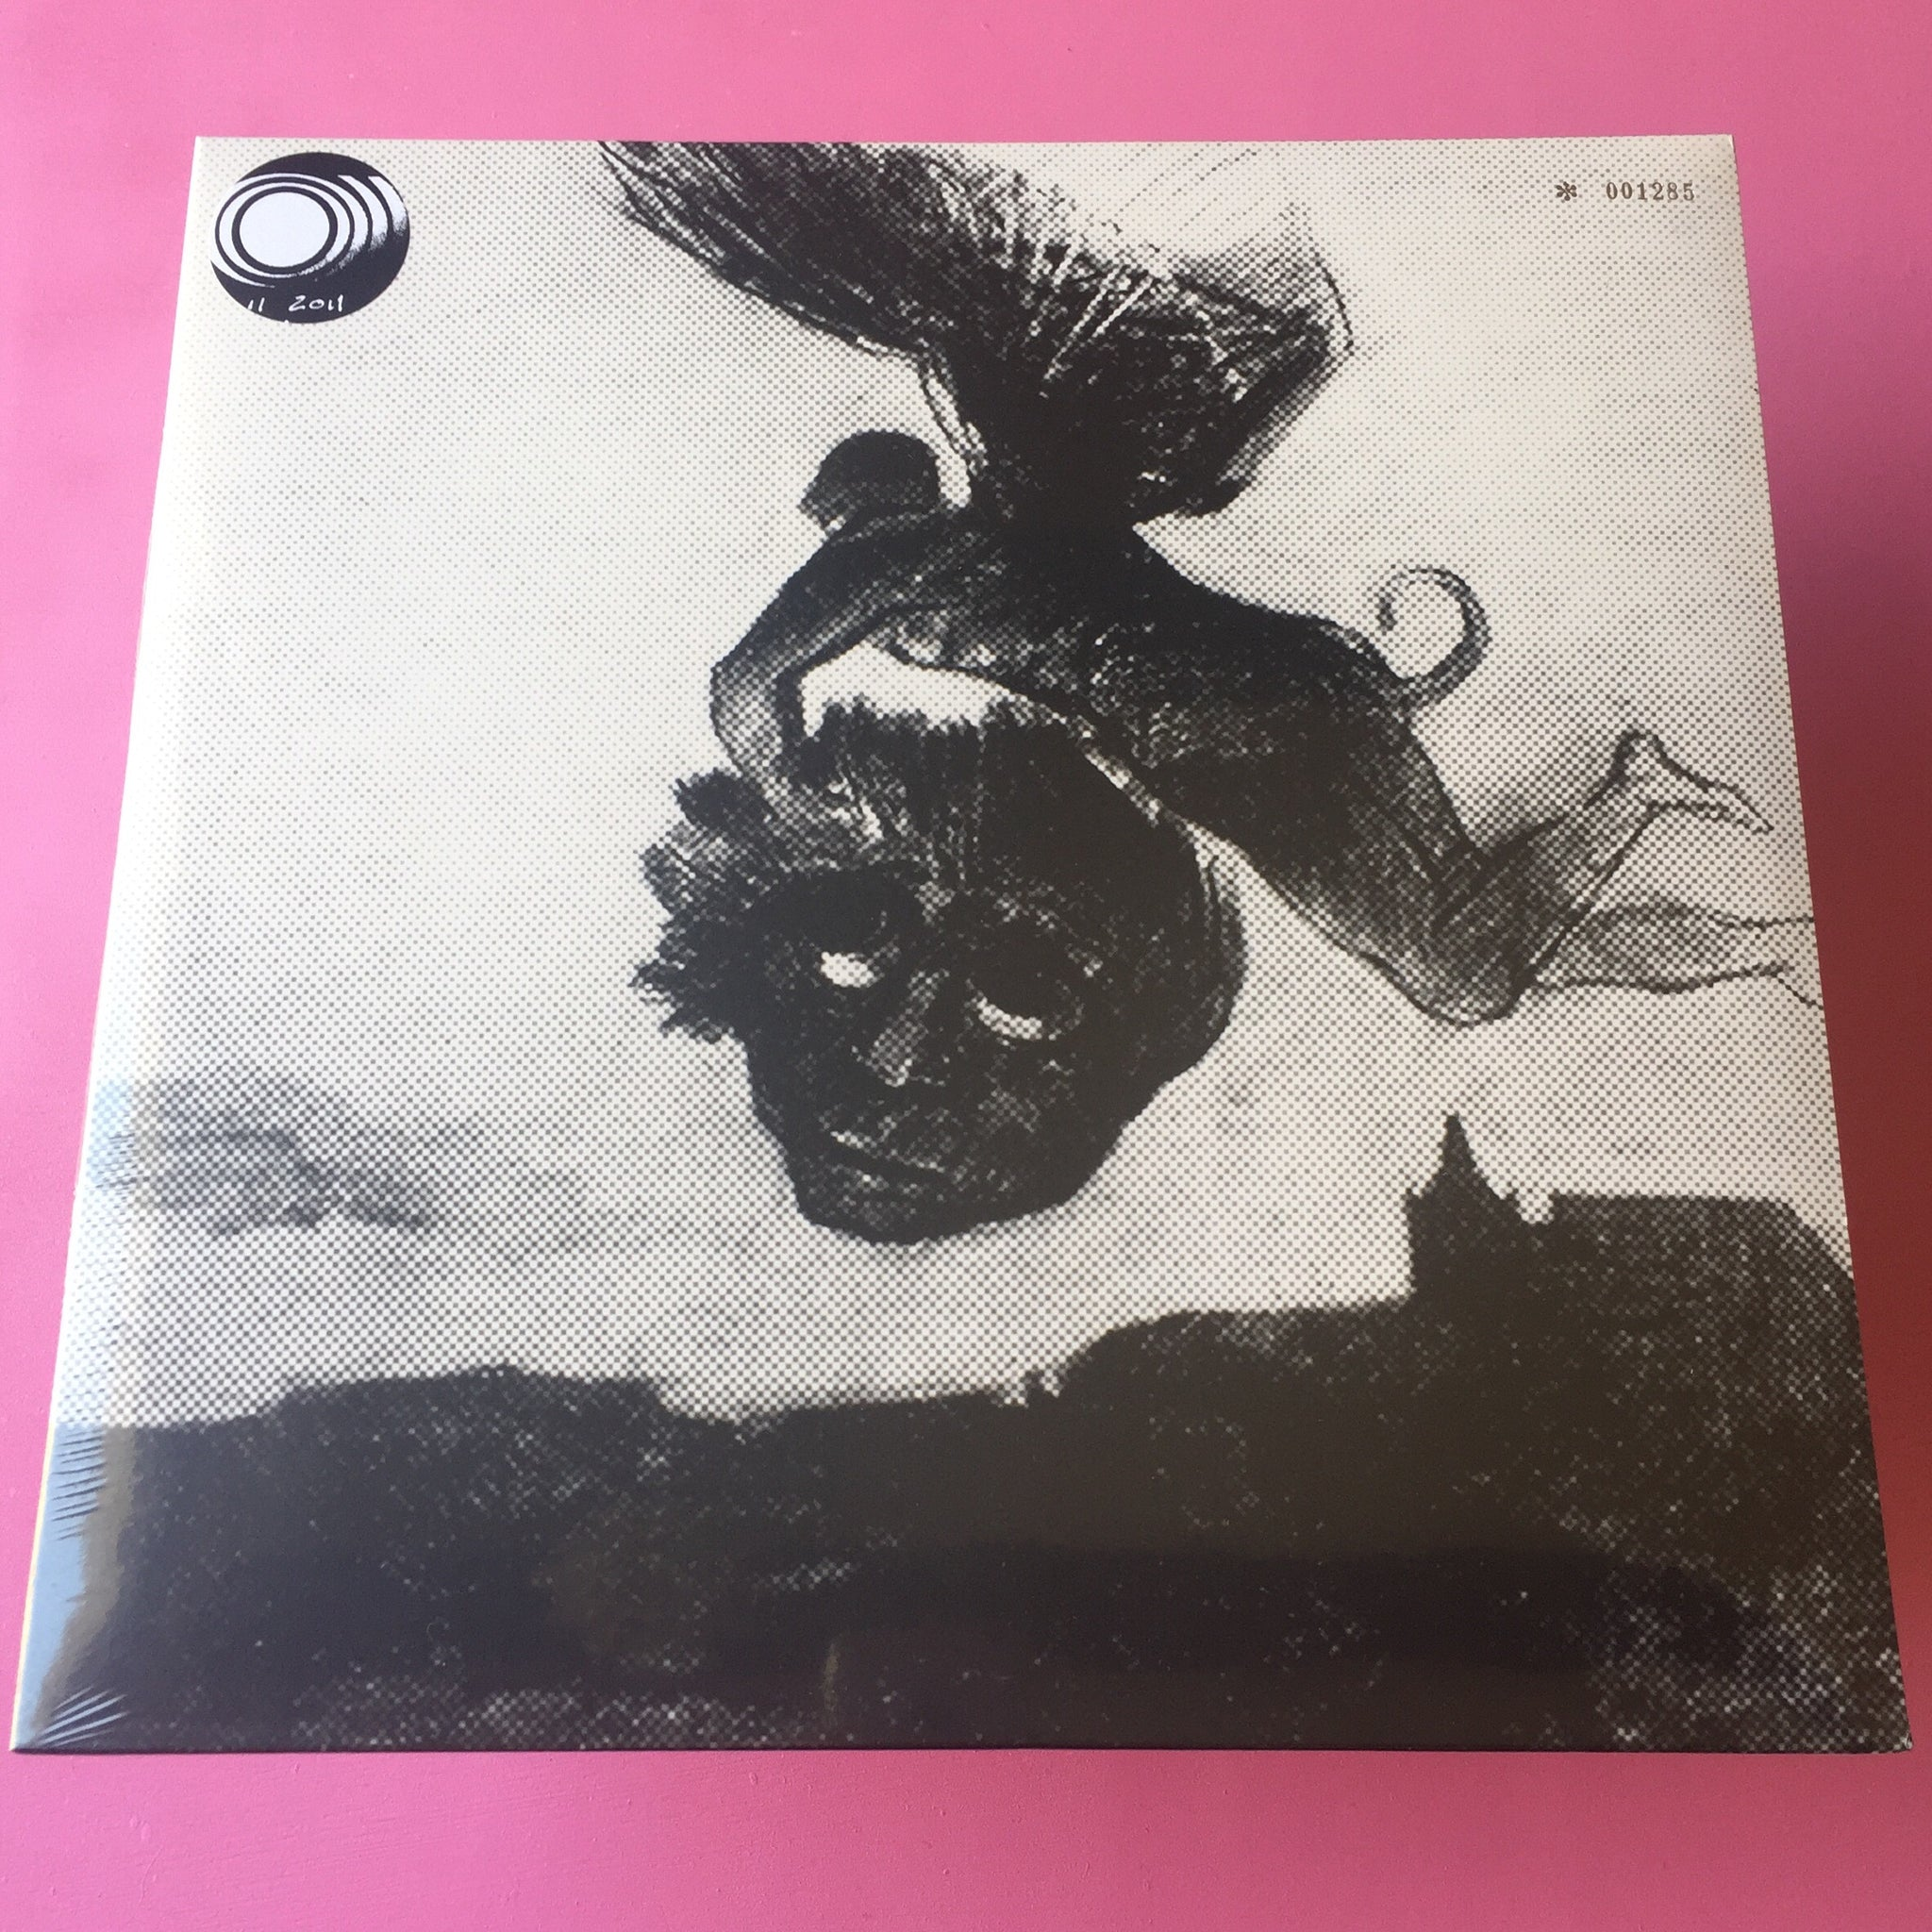 Sunn O))) - Rehearsal Demo Nov 11, 2011 LP (Southern Lord, 2012)